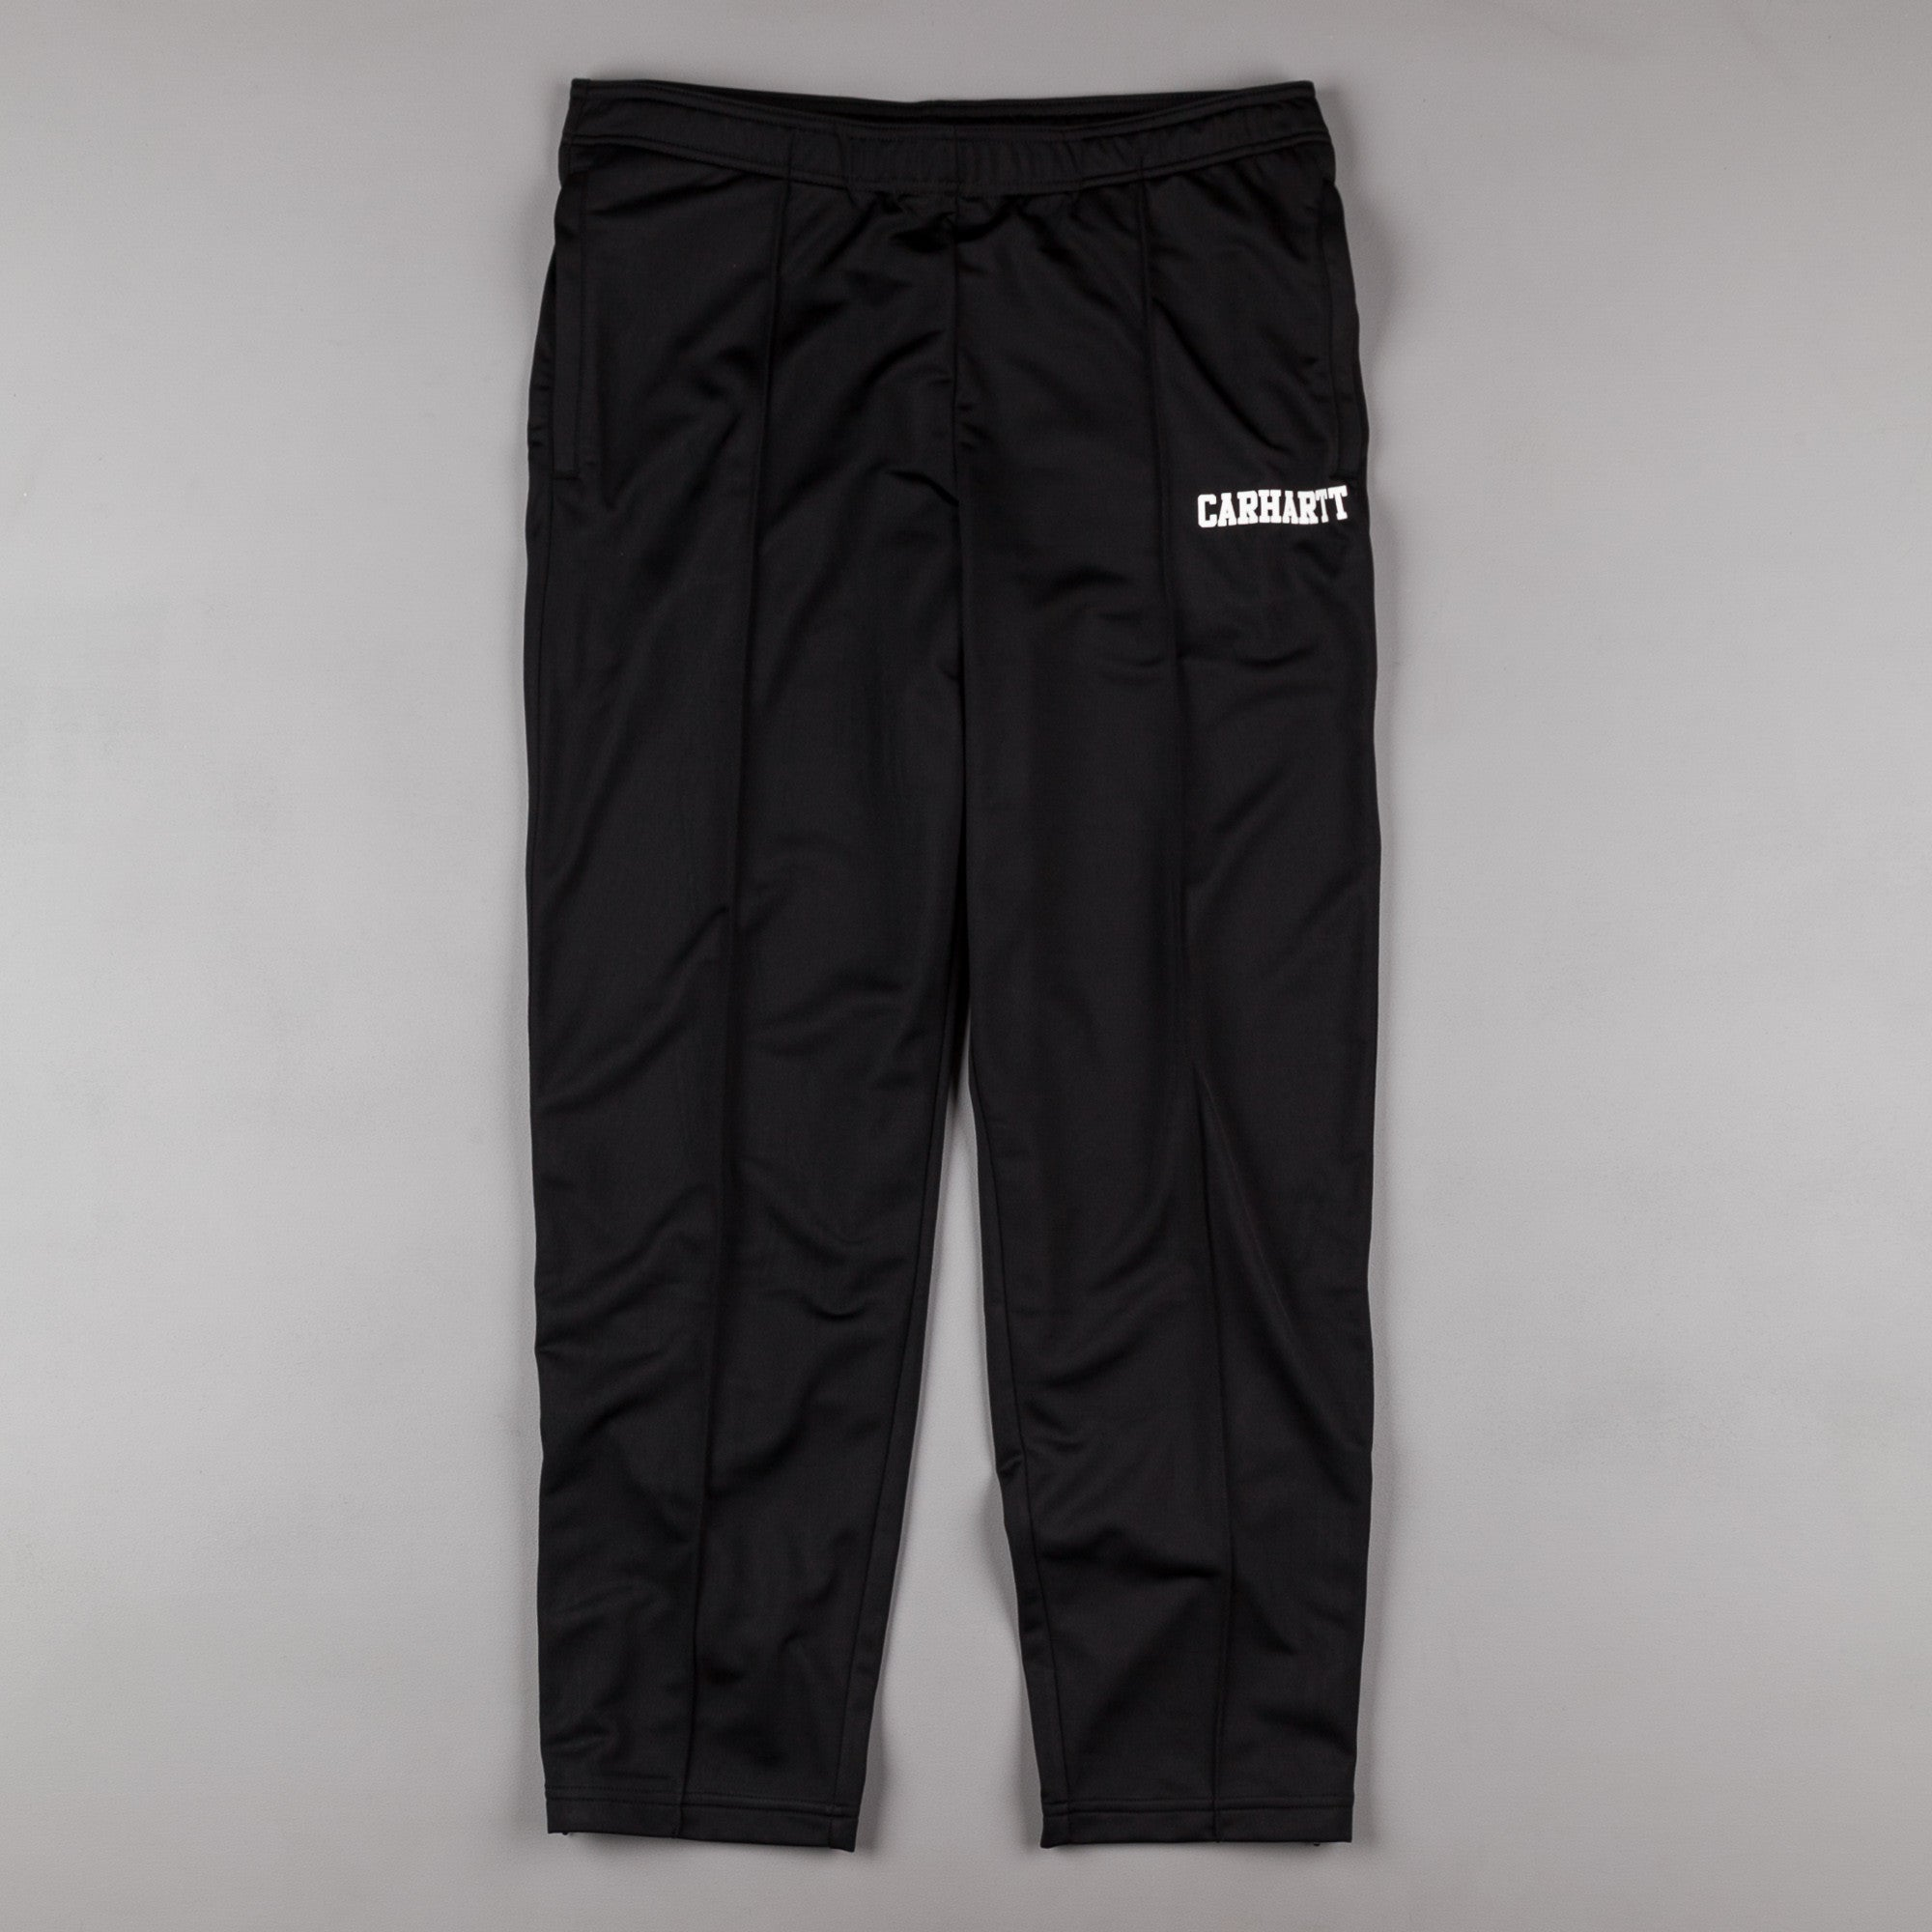 Carhartt College Track Sweatpants - Black / White